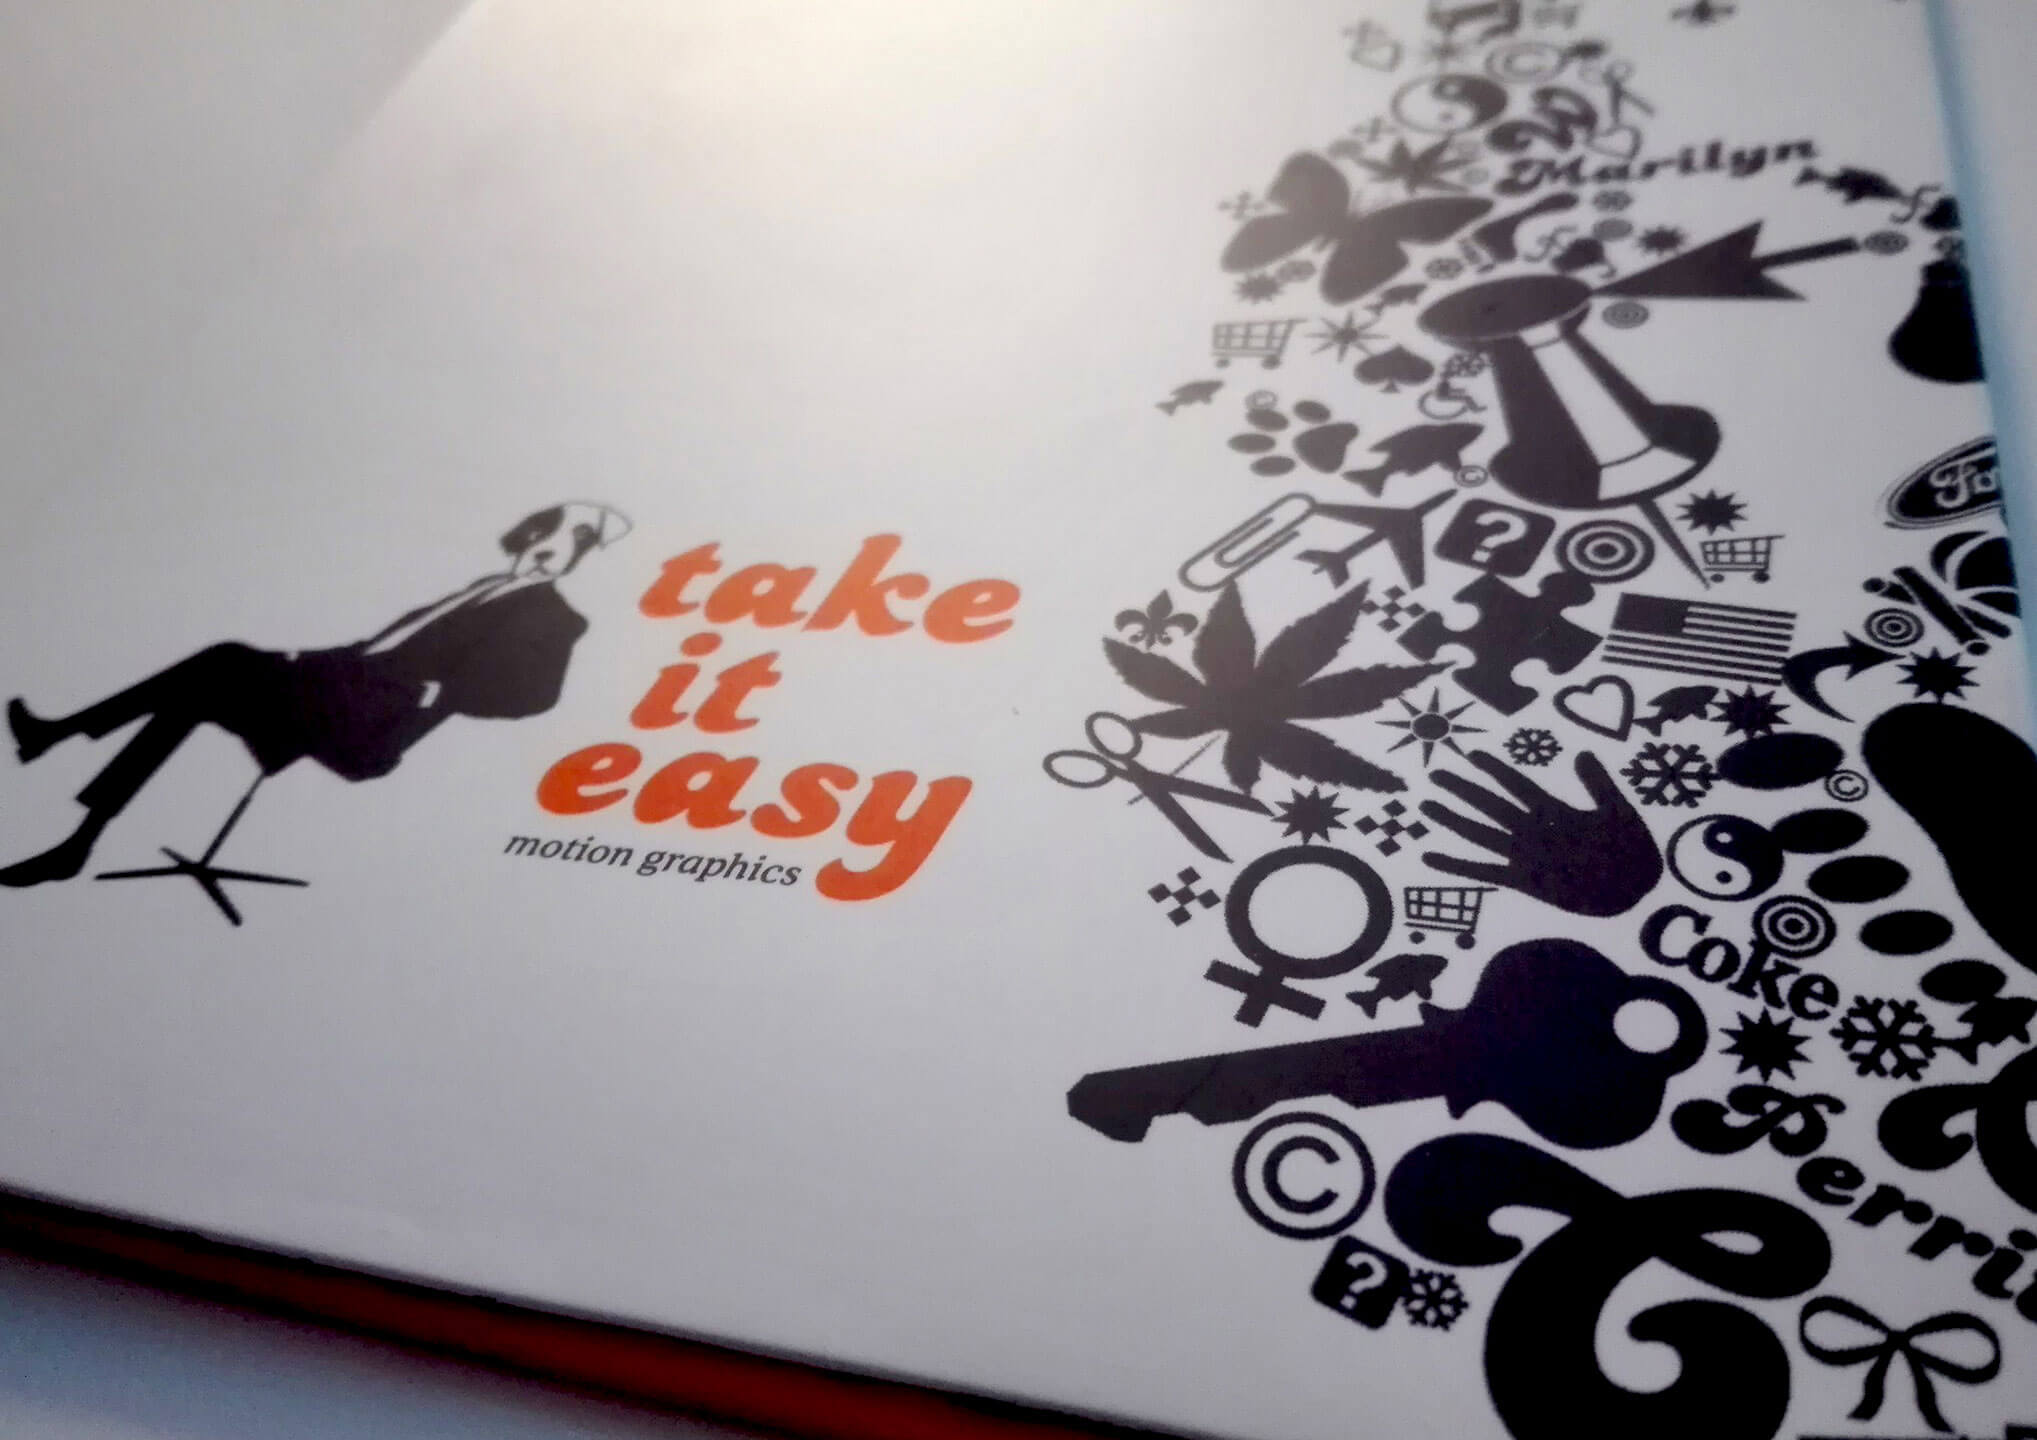 003-take-it-easy-folleto